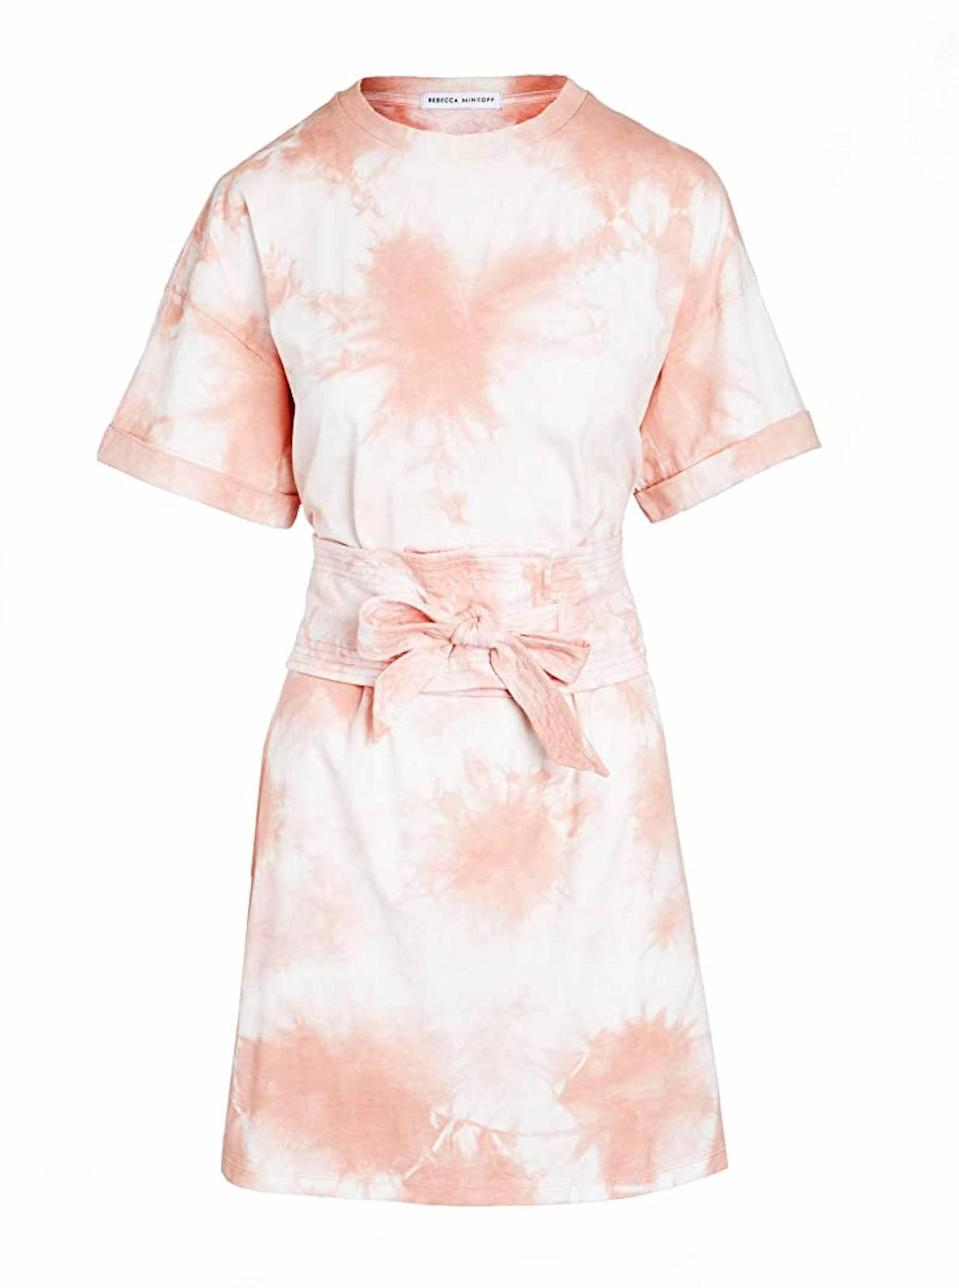 "Yes, you can get designer clothes with Amazon-level shipping times. This Rebecca Minkoff tie-dye number is the perfect pastel piece to commence summertime. $74, Amazon. <a href=""https://www.amazon.com/Rebecca-Minkoff-Womens-Marta-Medium/dp/B0872Z3TJL"" rel=""nofollow noopener"" target=""_blank"" data-ylk=""slk:Get it now!"" class=""link rapid-noclick-resp"">Get it now!</a>"